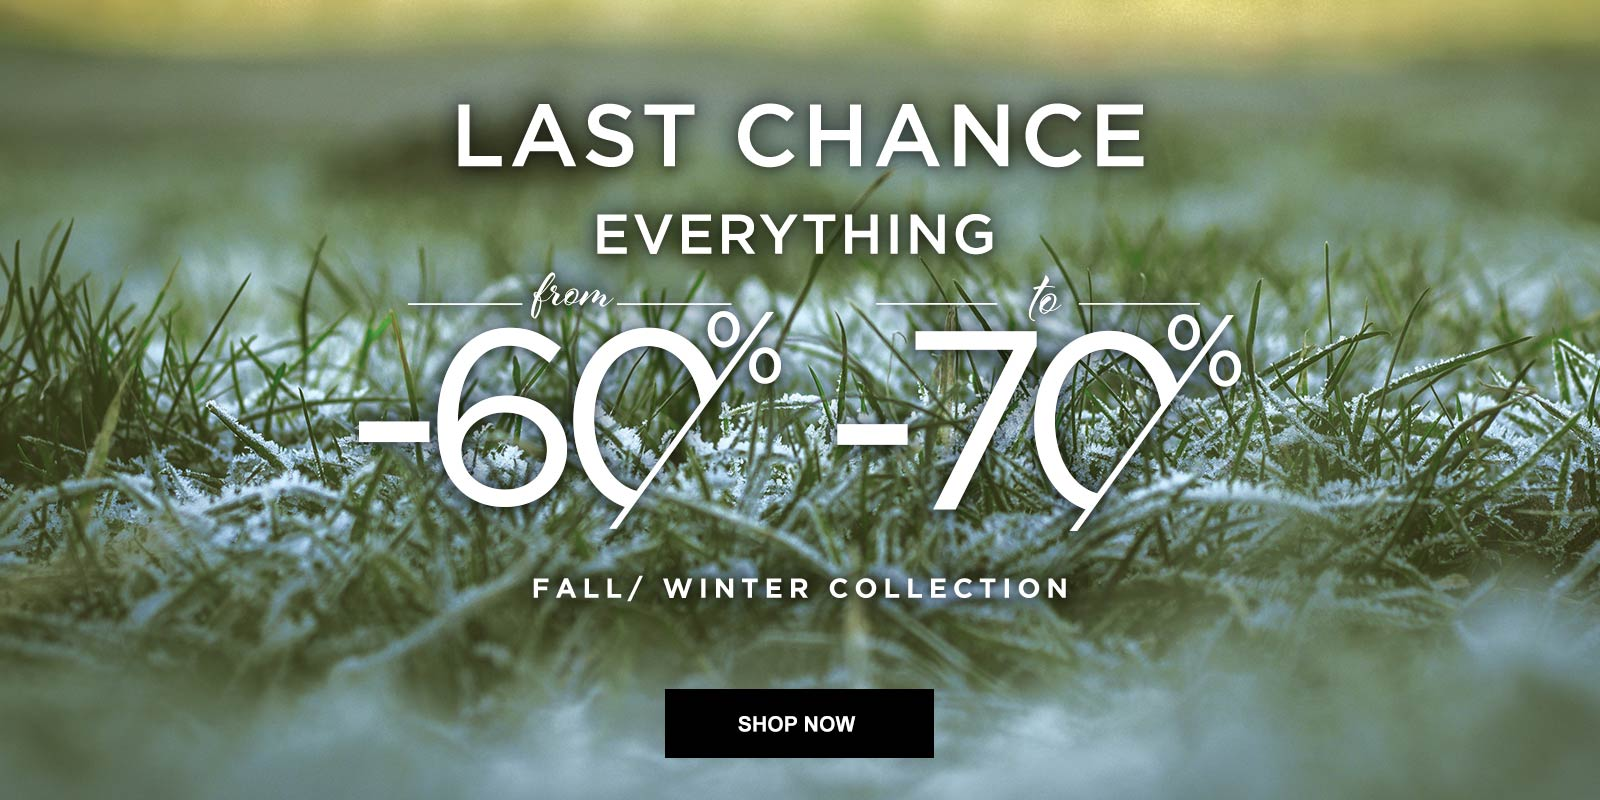 OLTRE: WINTER SALES EVERYTHING FROM 60% TO 70% OFF